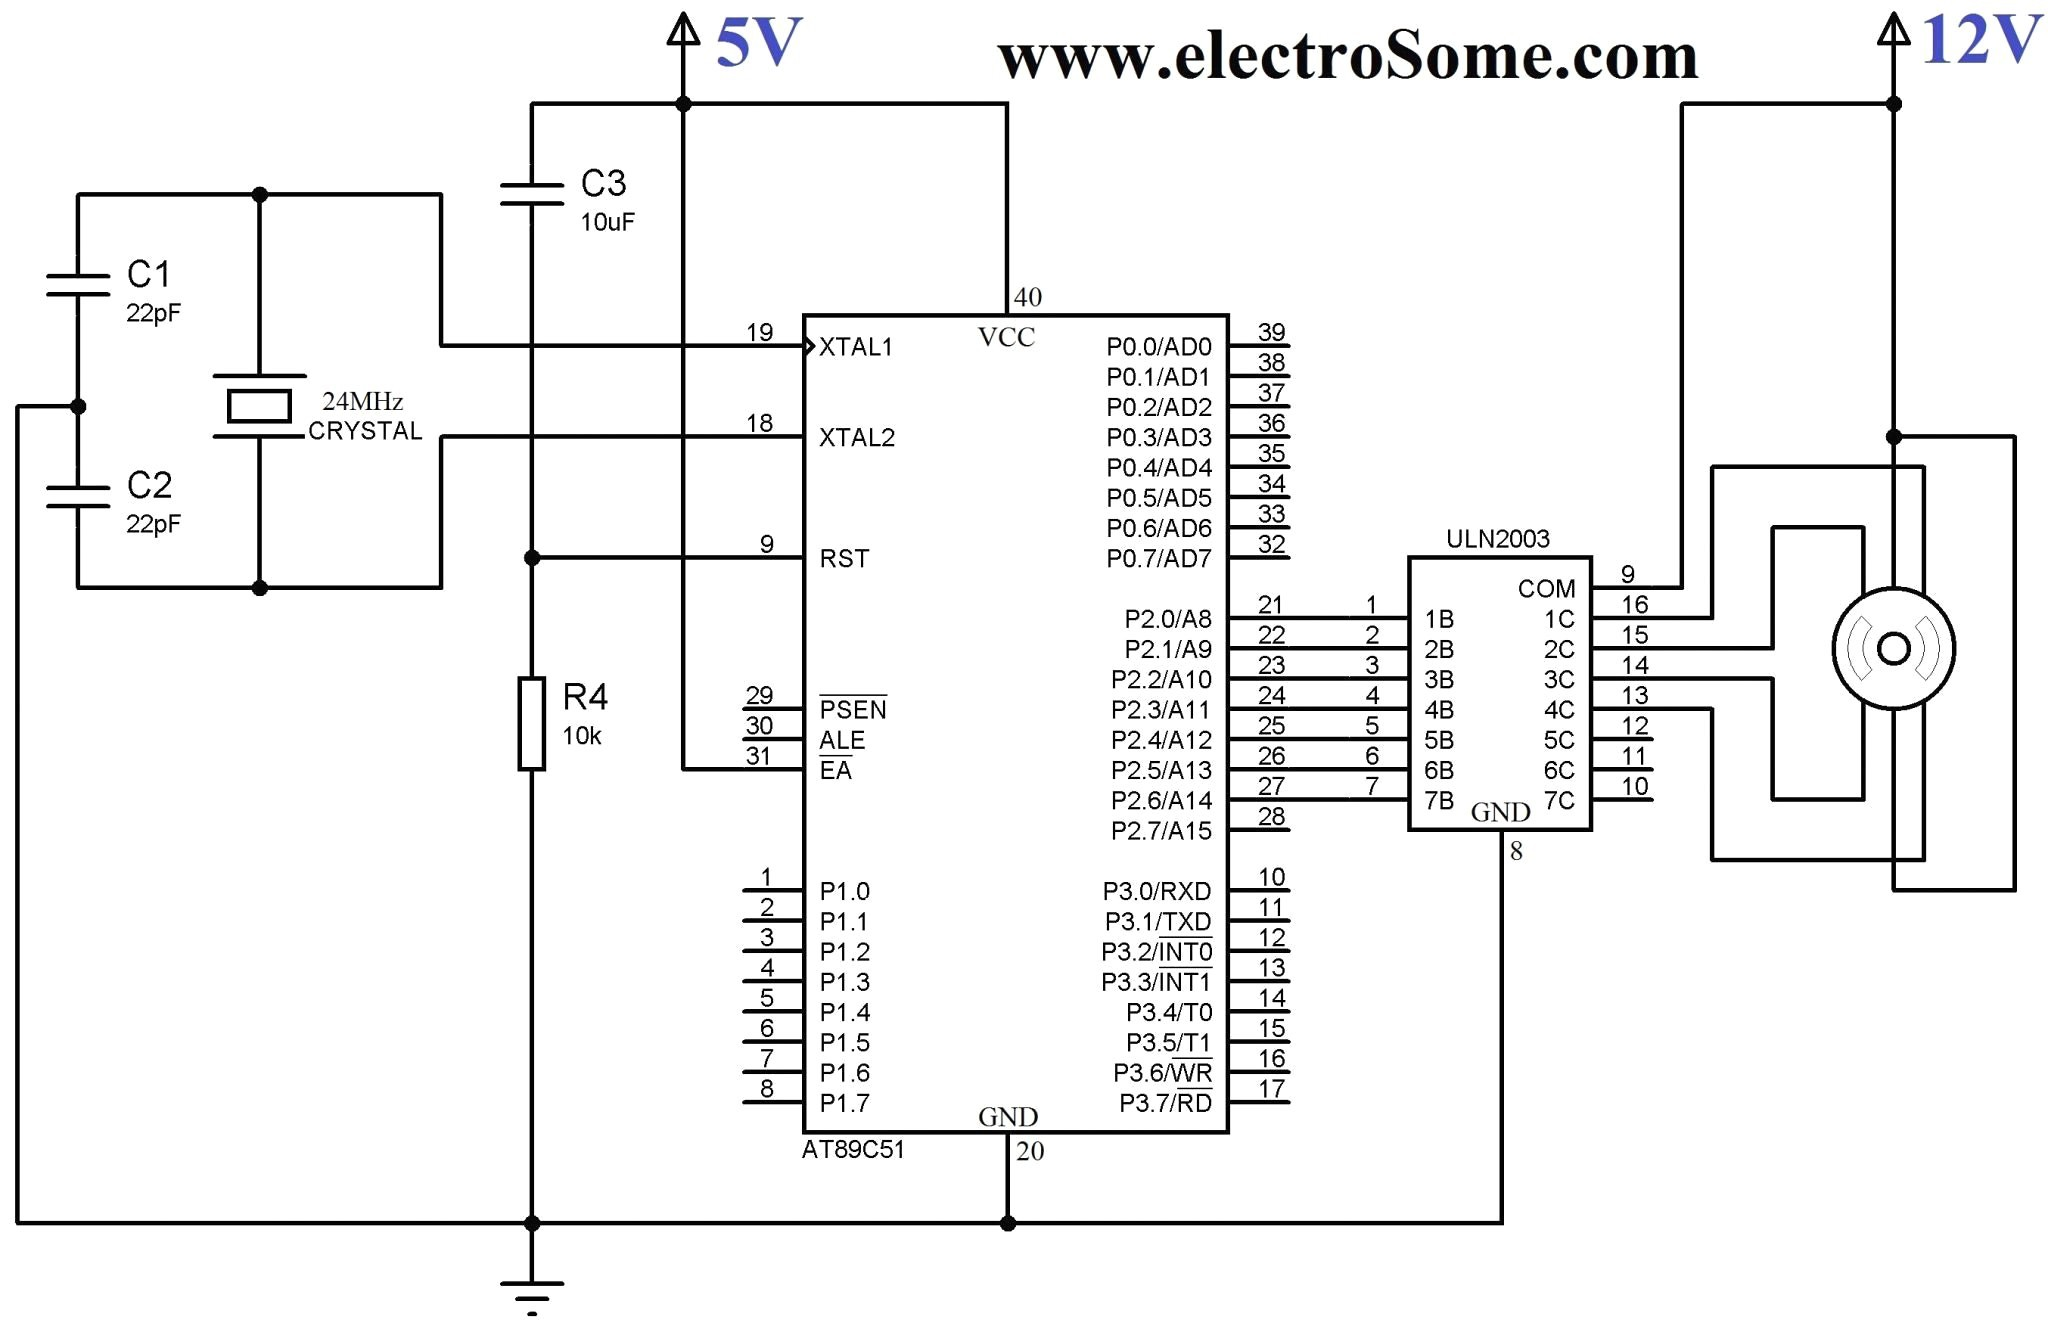 commax interphone wiring diagram